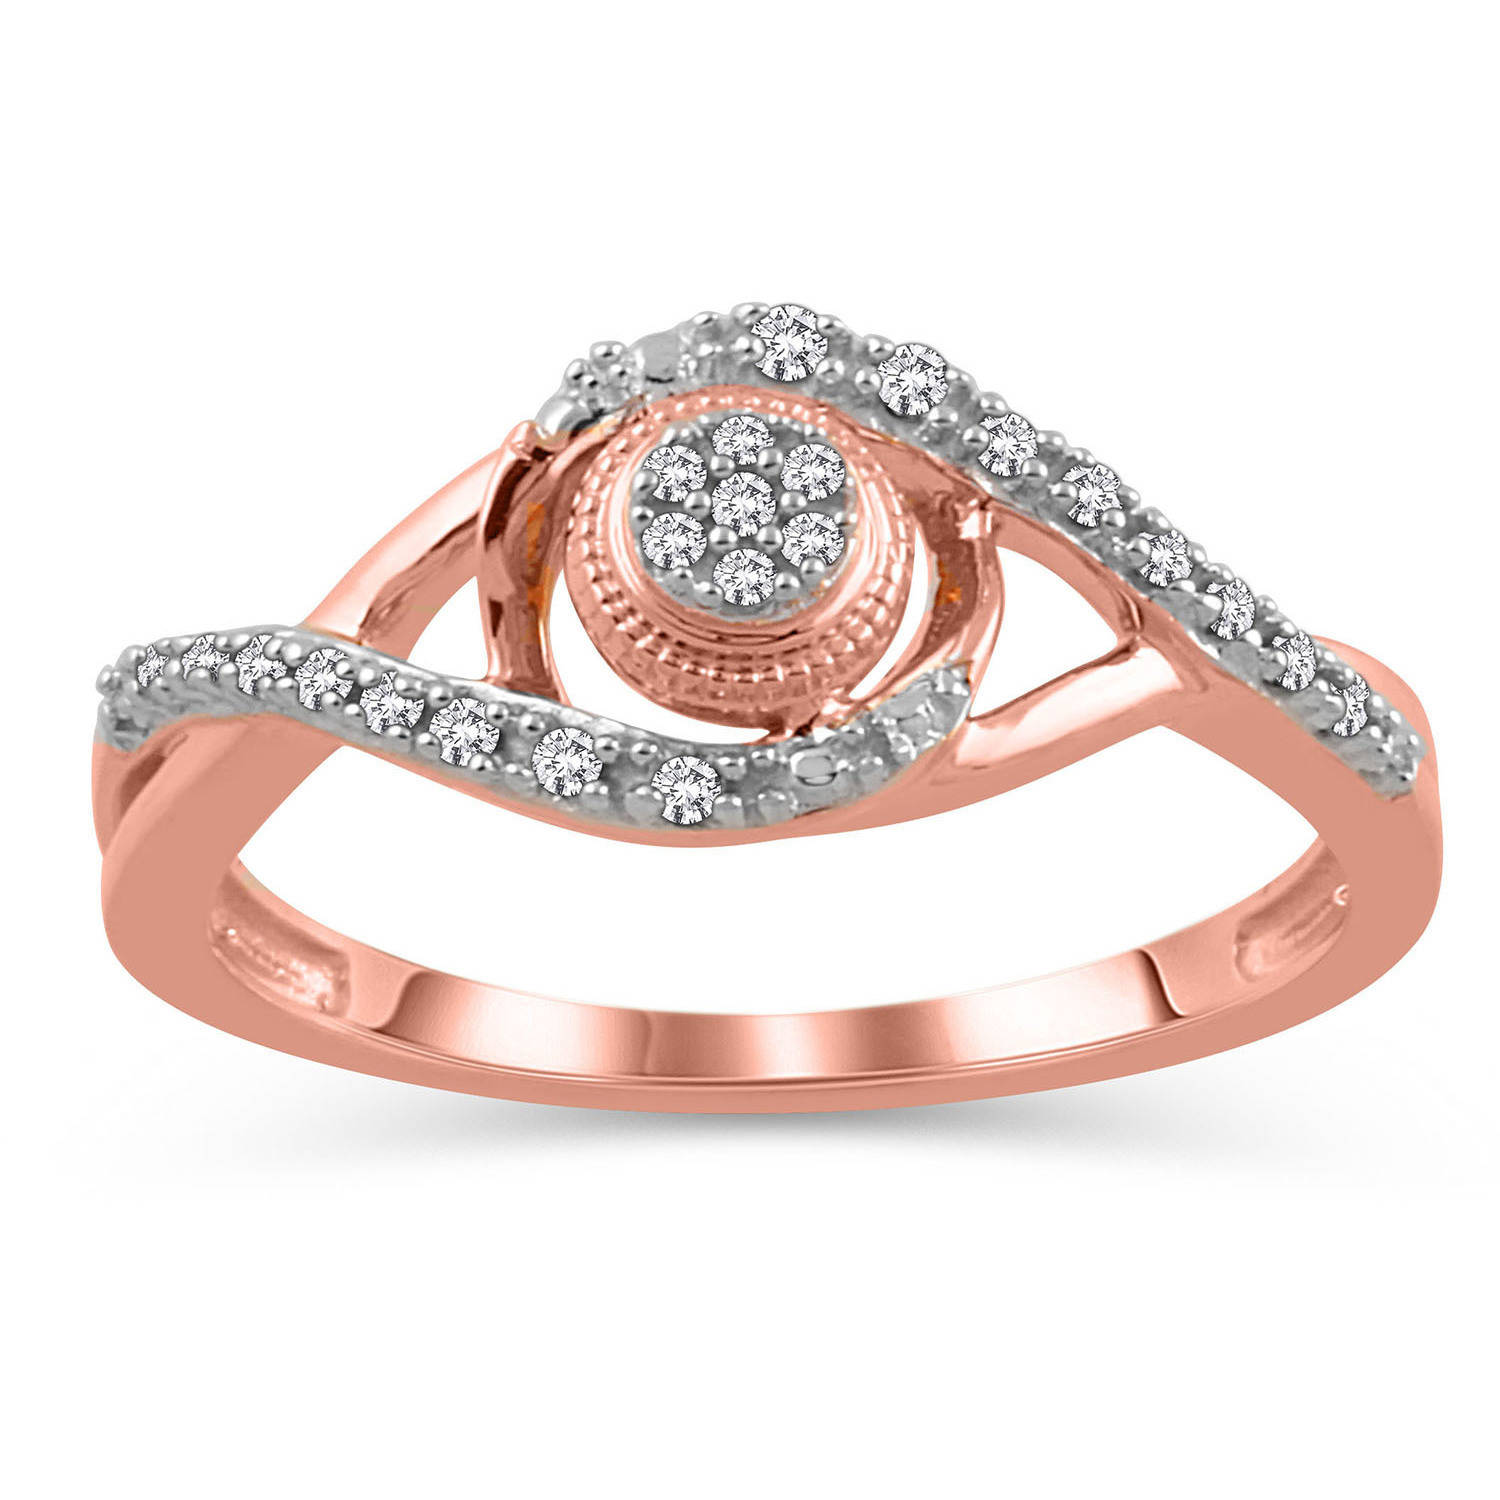 1 10 Carat T.W. Diamond 10kt Pink Gold Promise Ring by ELEGANT COLLECTION